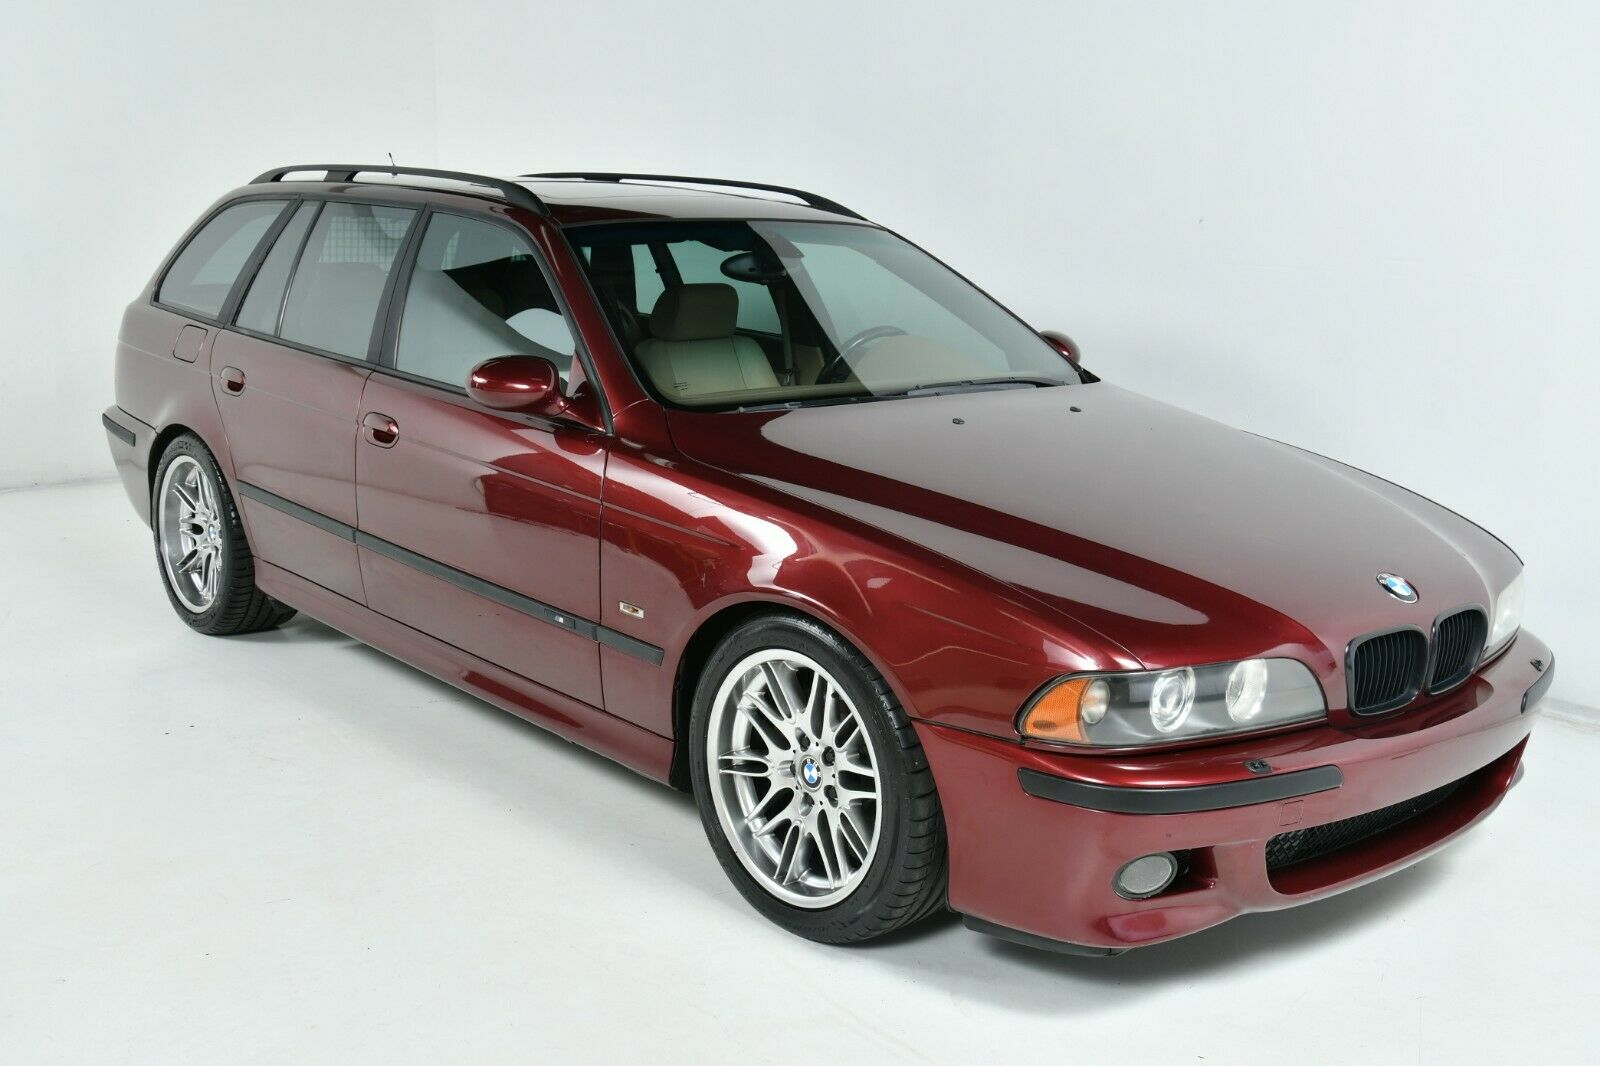 2000 Bmw 540i Sport Touring Dinan Supercharged German Cars For Sale Blog